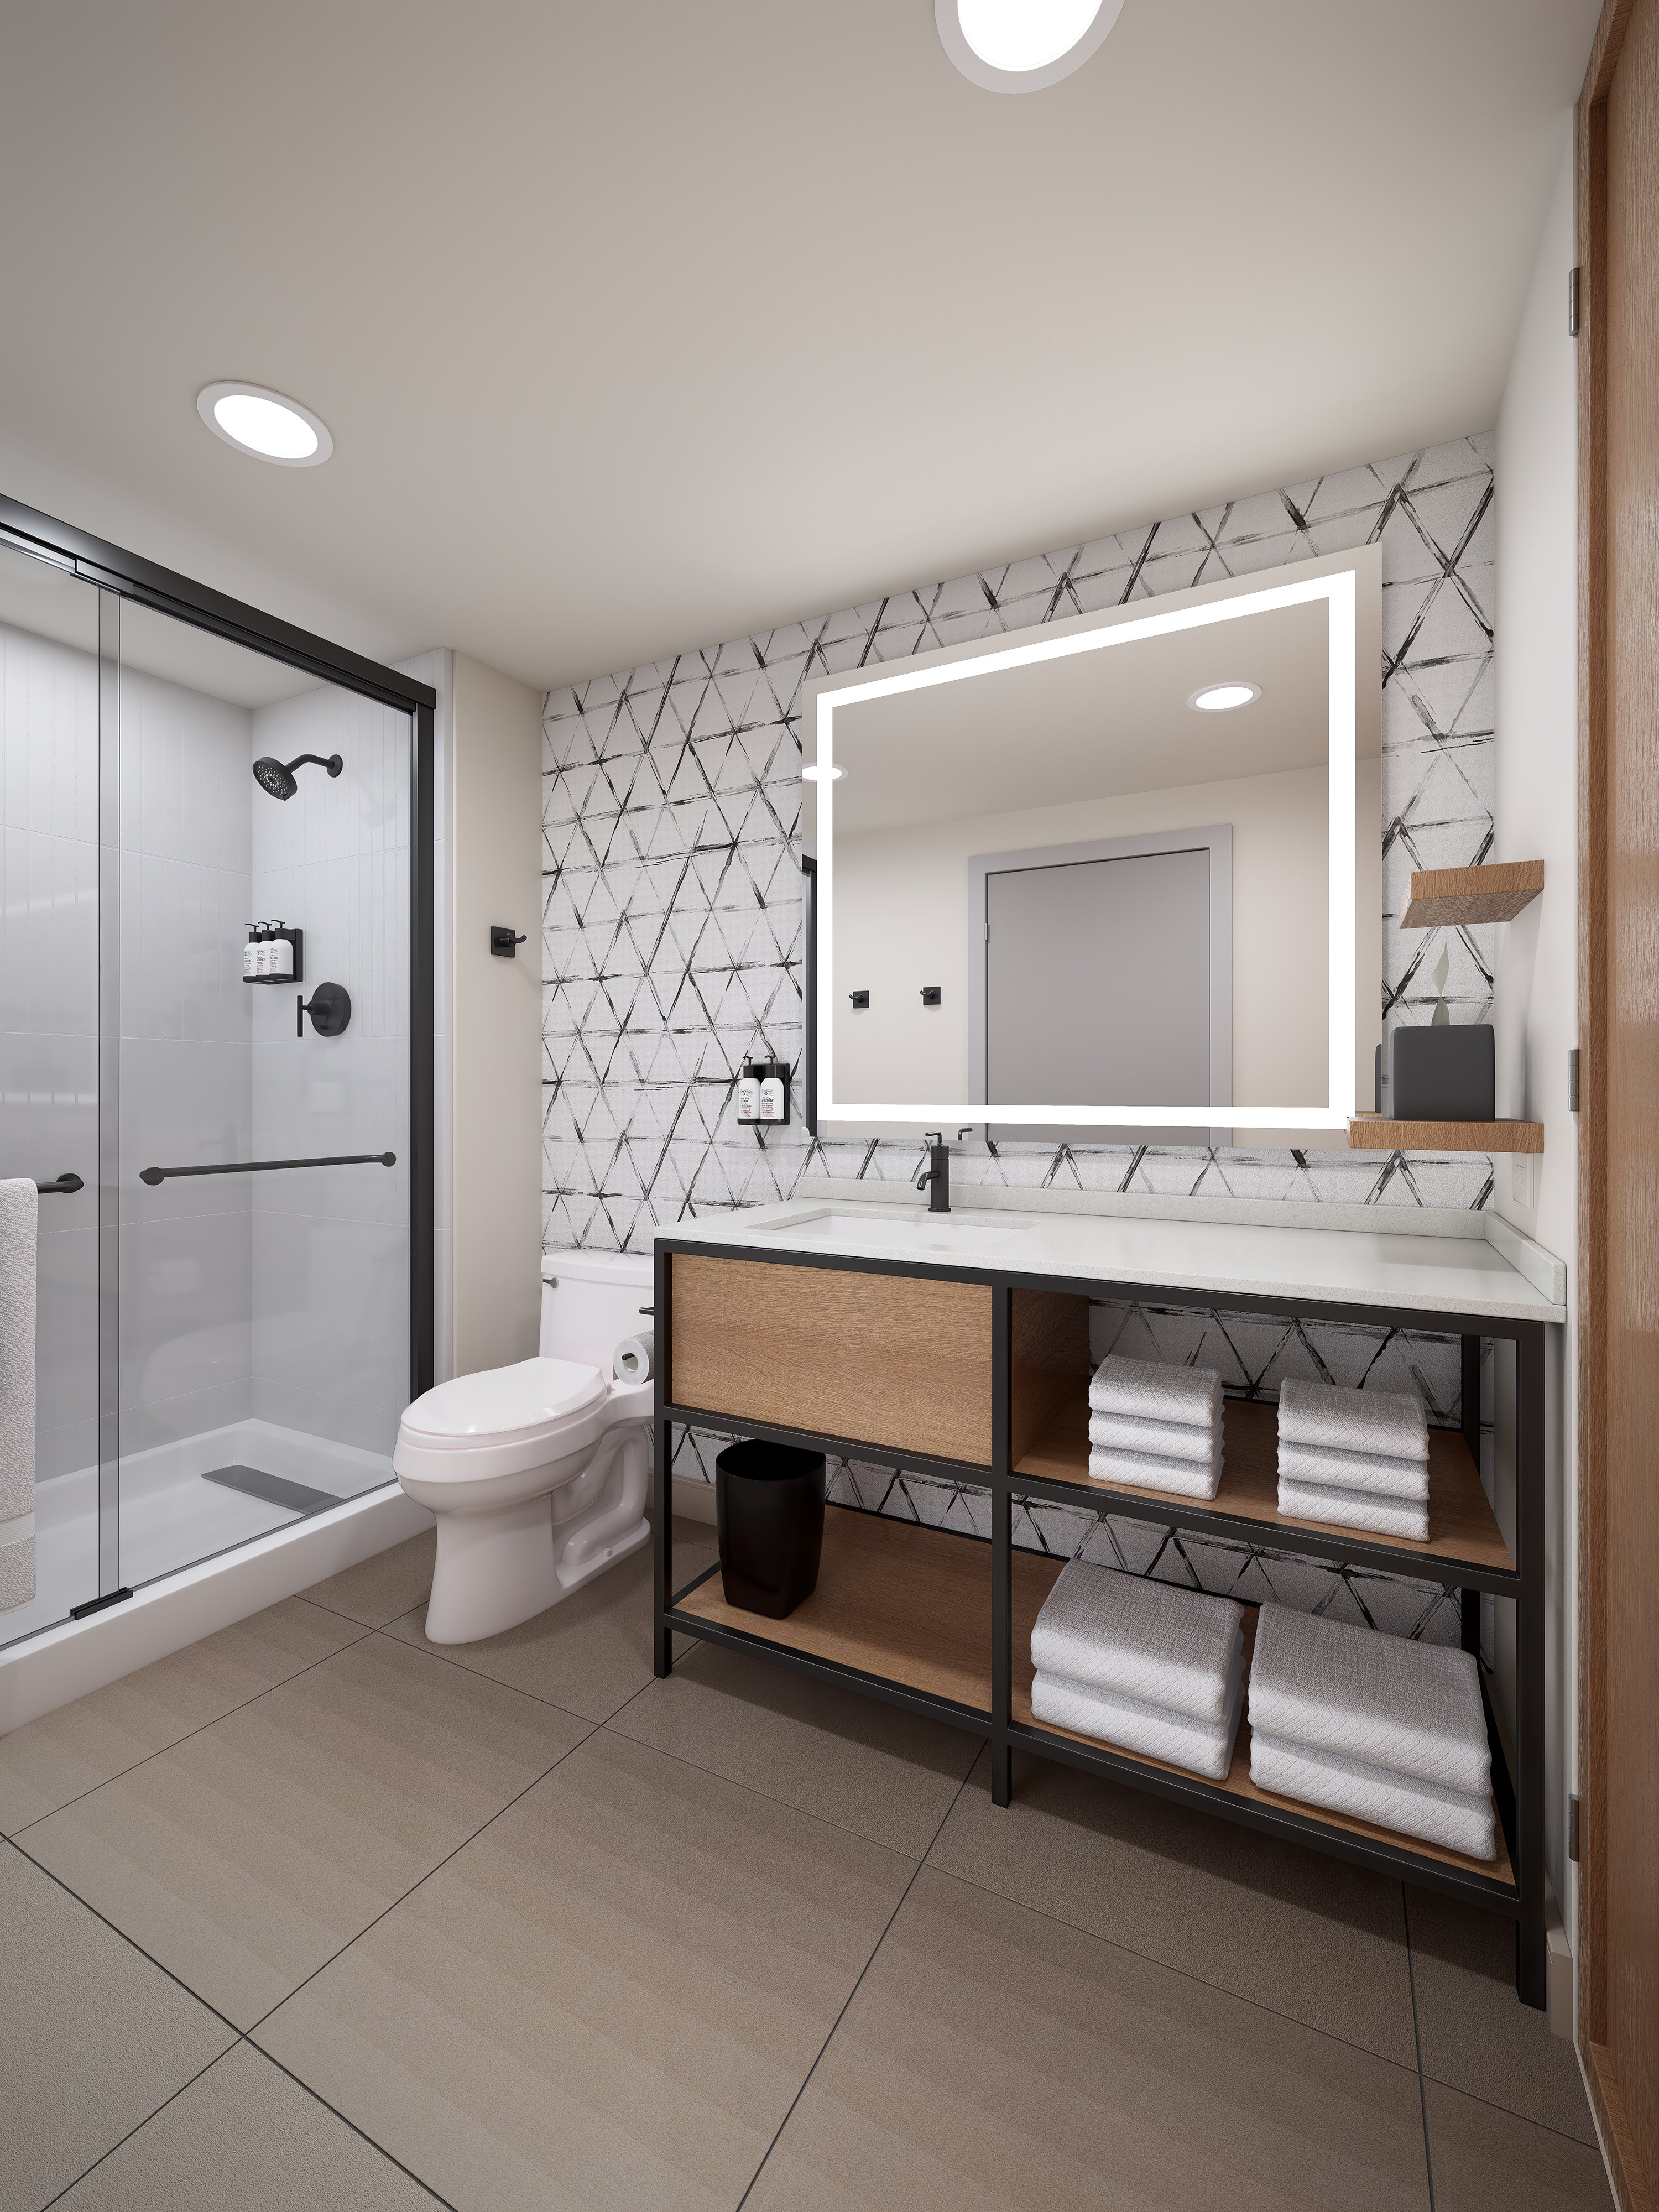 Bathrooms have oversized vanities for guests' cosmetics and shaving items.